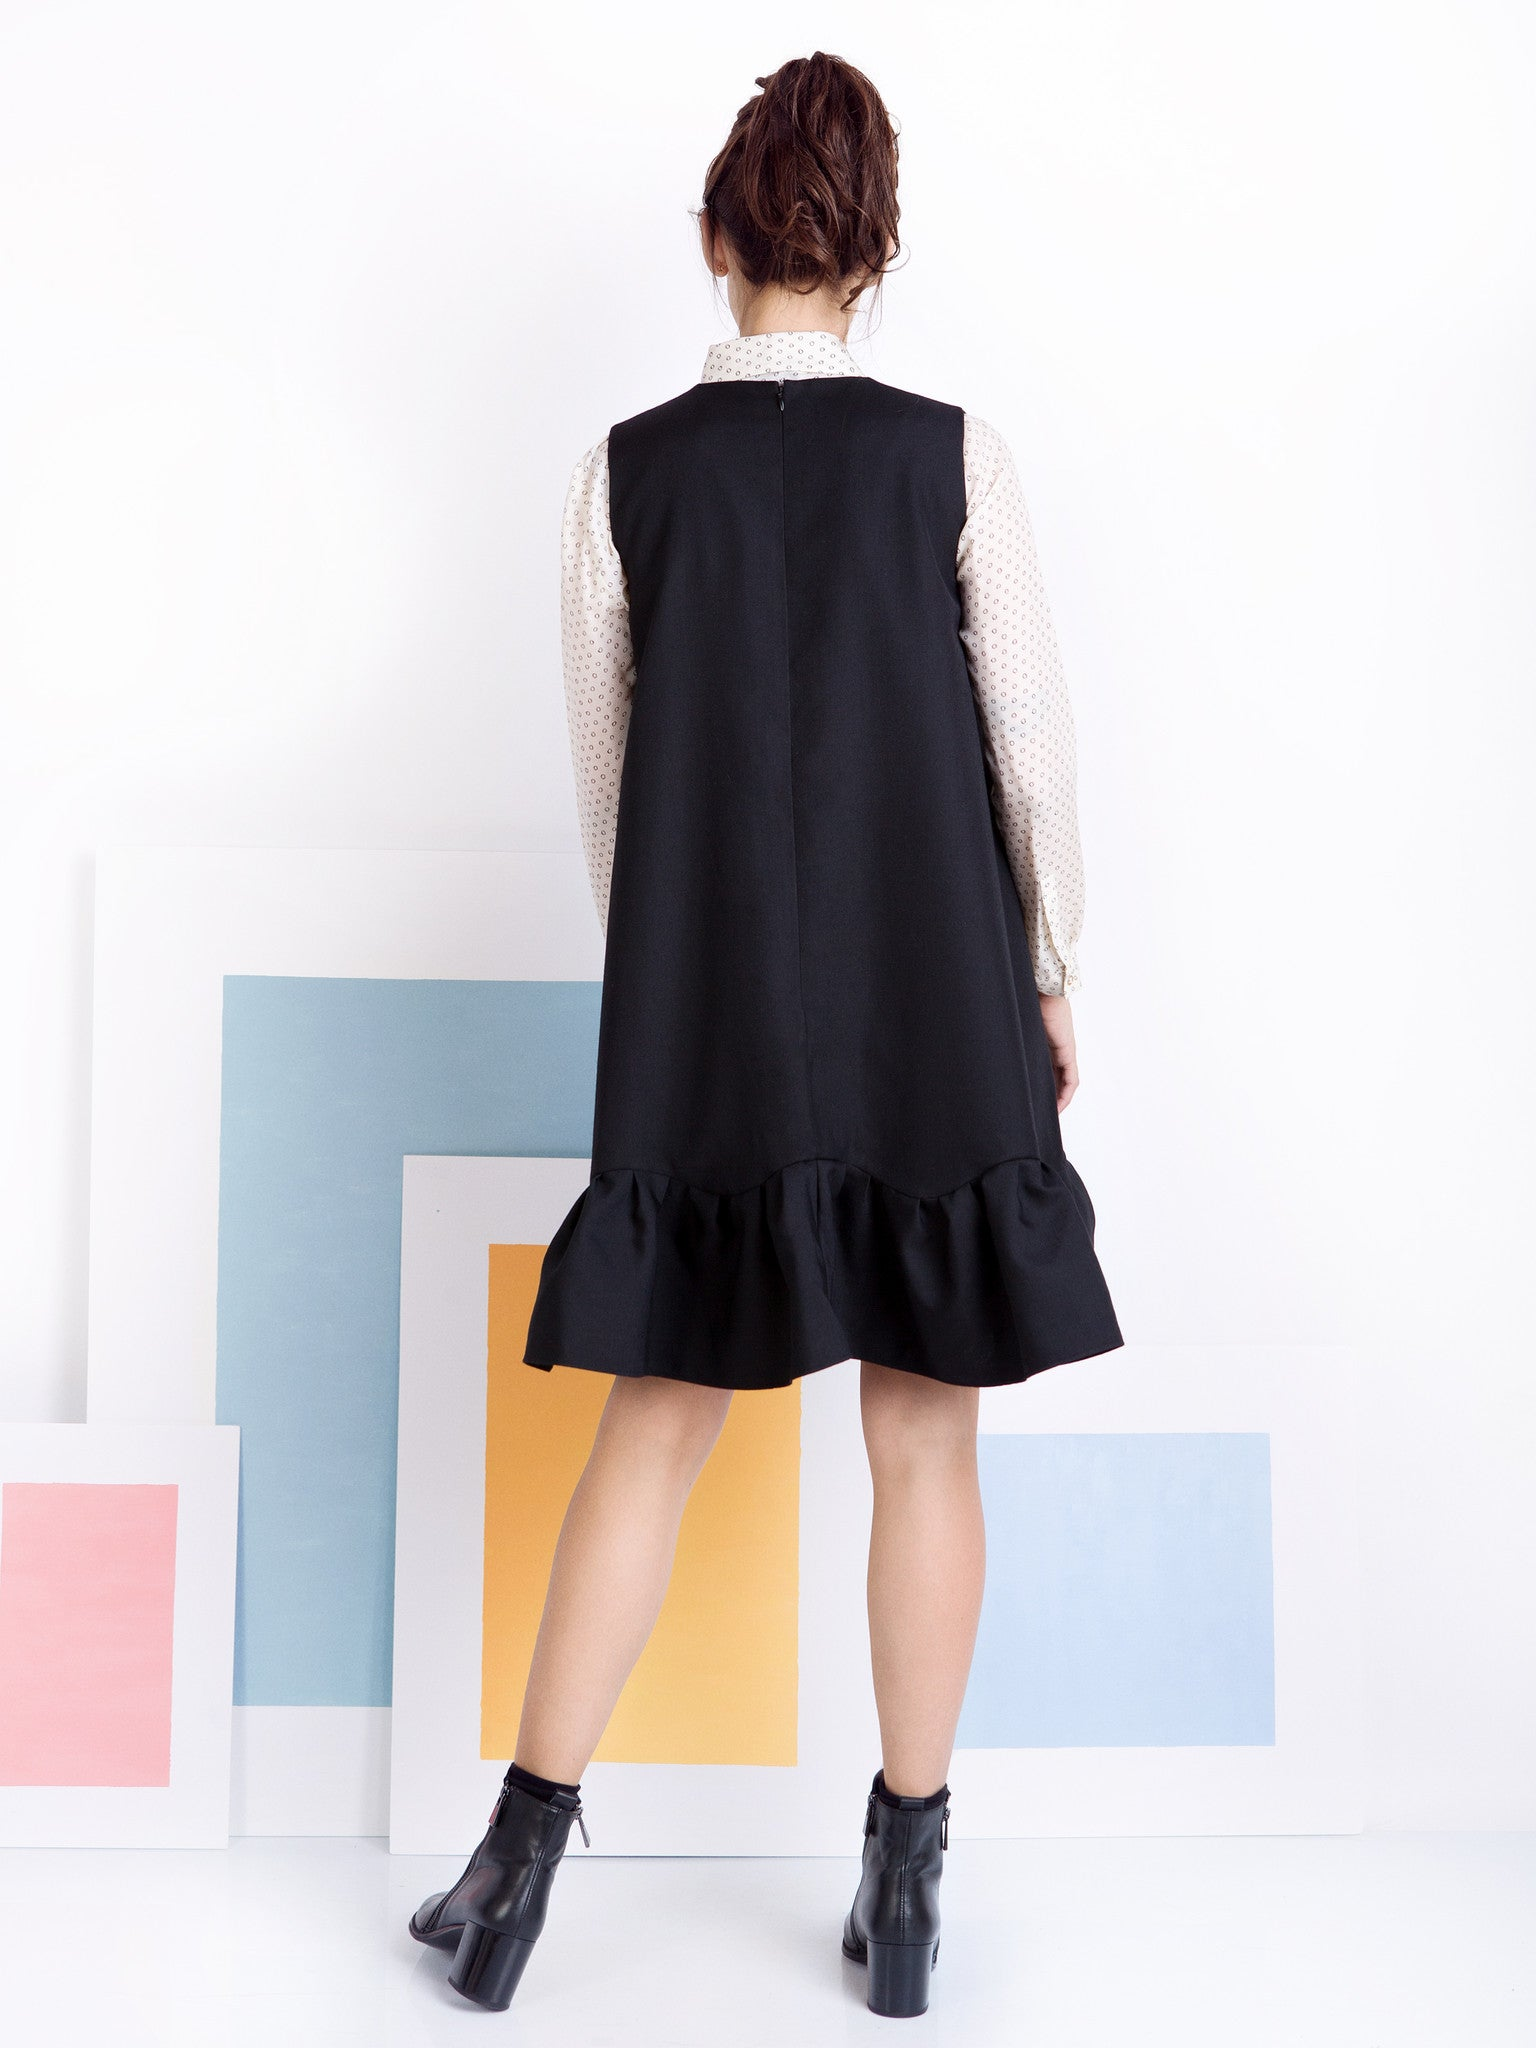 Ambali A- Line Black Frill Dress Back